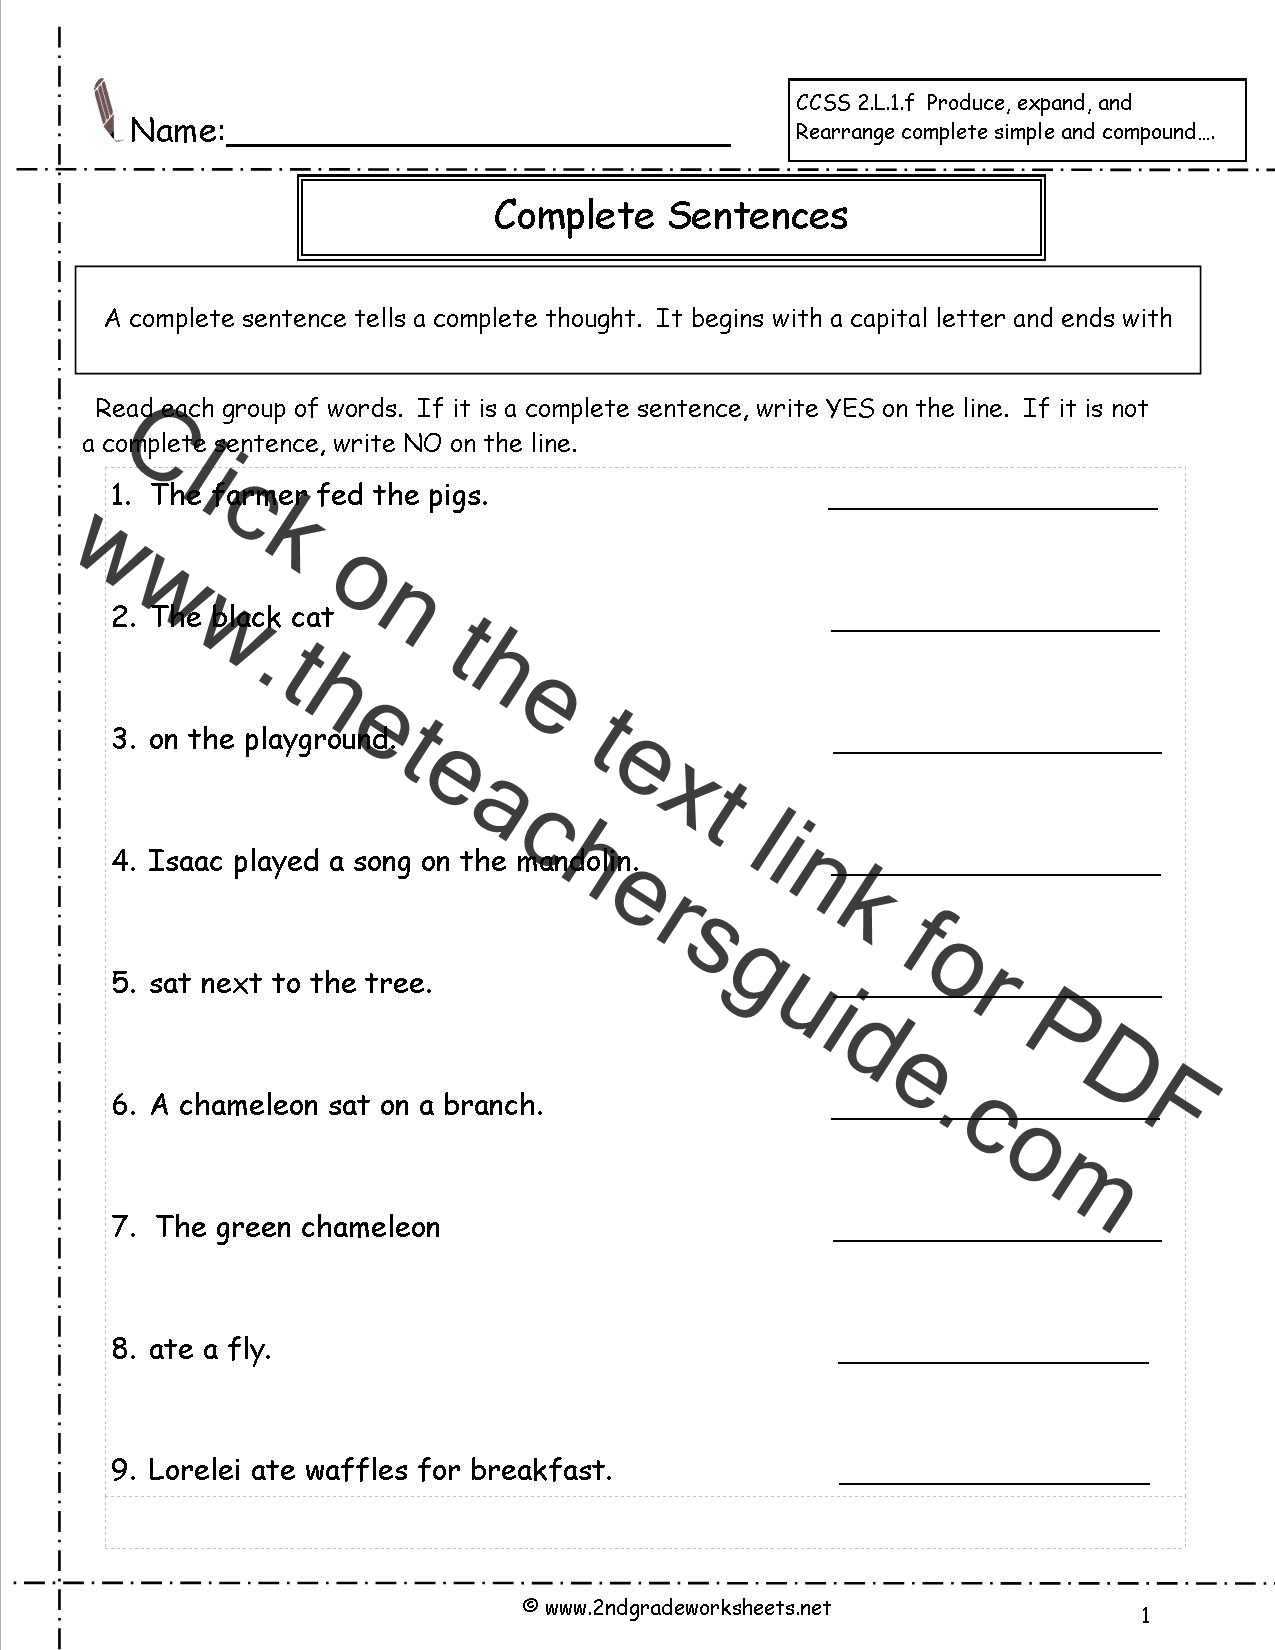 Worksheets Complete Sentences Worksheets second grade sentences worksheets ccss 2 l 1 f complete sentence worksheet